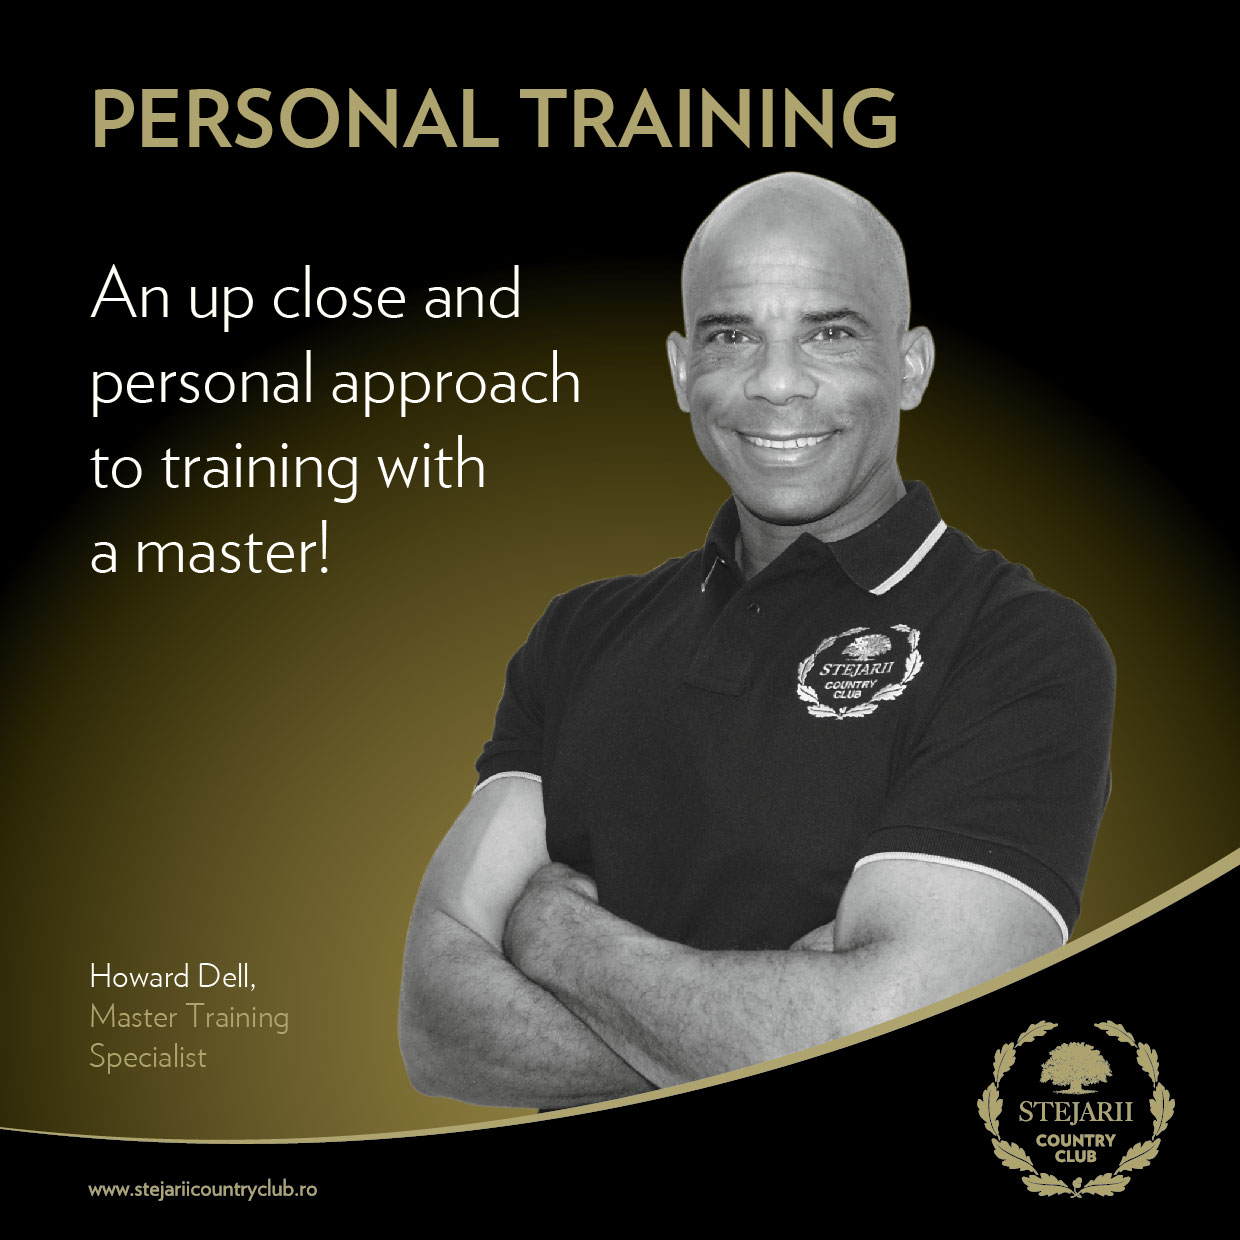 HOWARD DELL – Strength and Conditioning Specialist